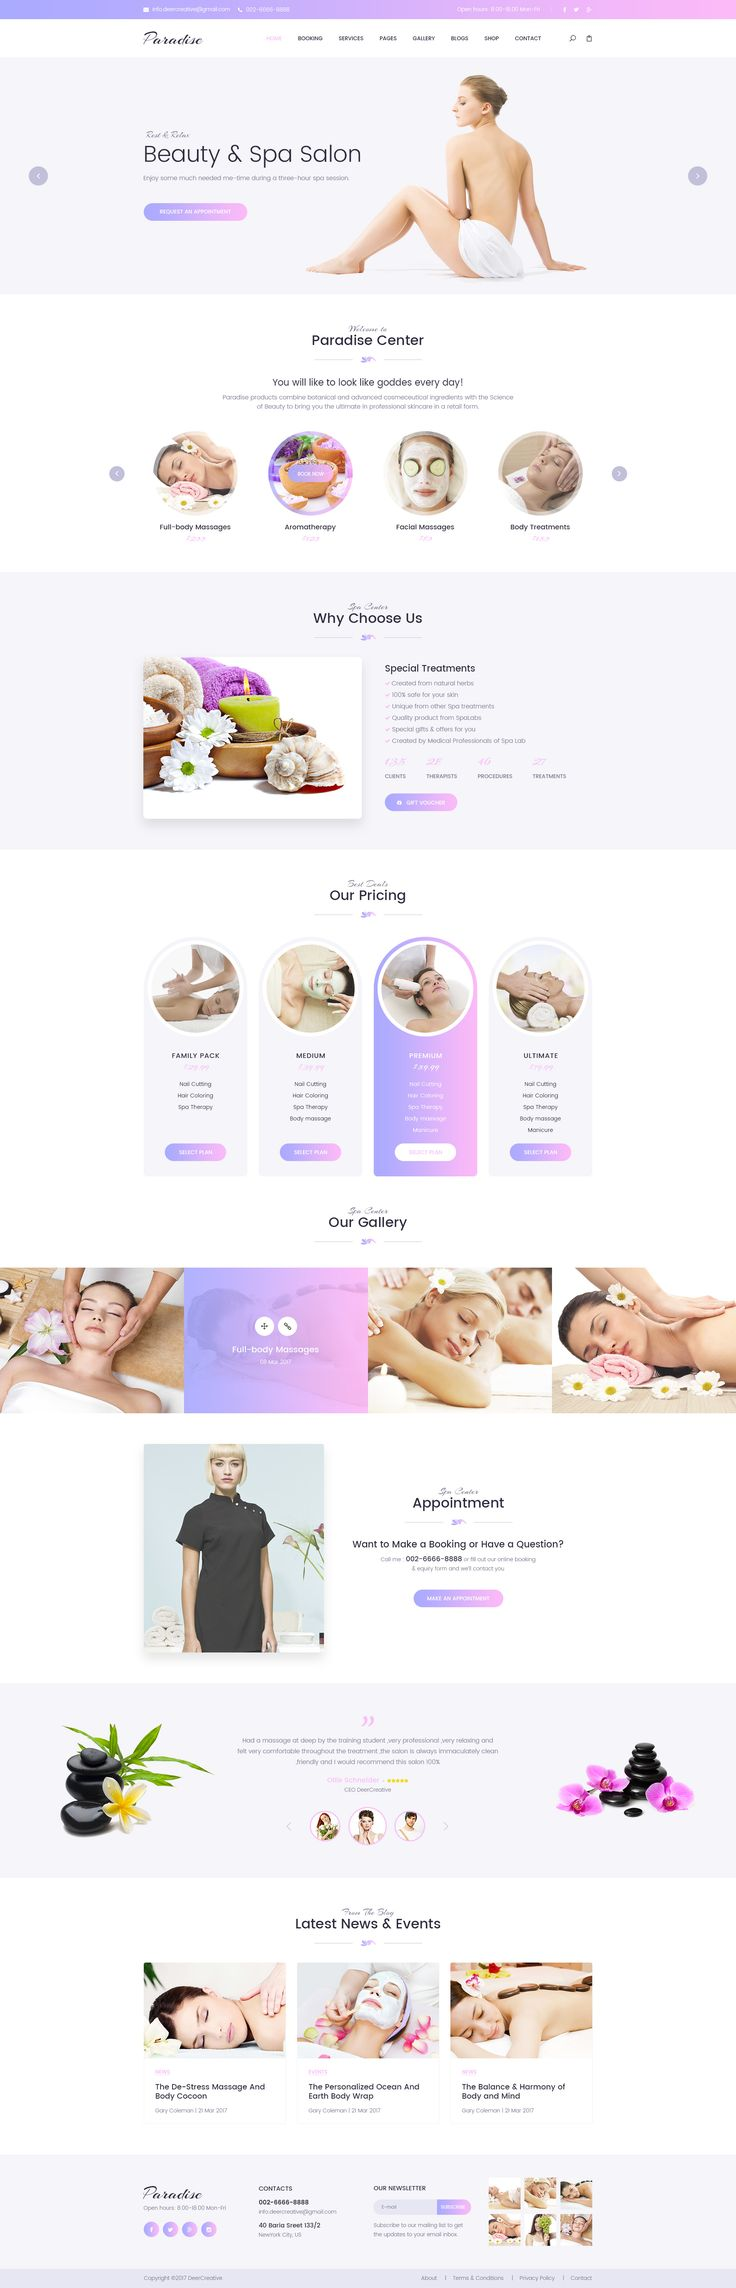 Paradise | Multipurpose Beauty & Spa, HairCut, Nail, Tattoo Psd Templates #health #health care #make up • Download ➝ https://themeforest.net/item/paradise-multipurpose-beauty-spa-haircut-nail-tattoo-psd-templates/19529792?ref=pxcr